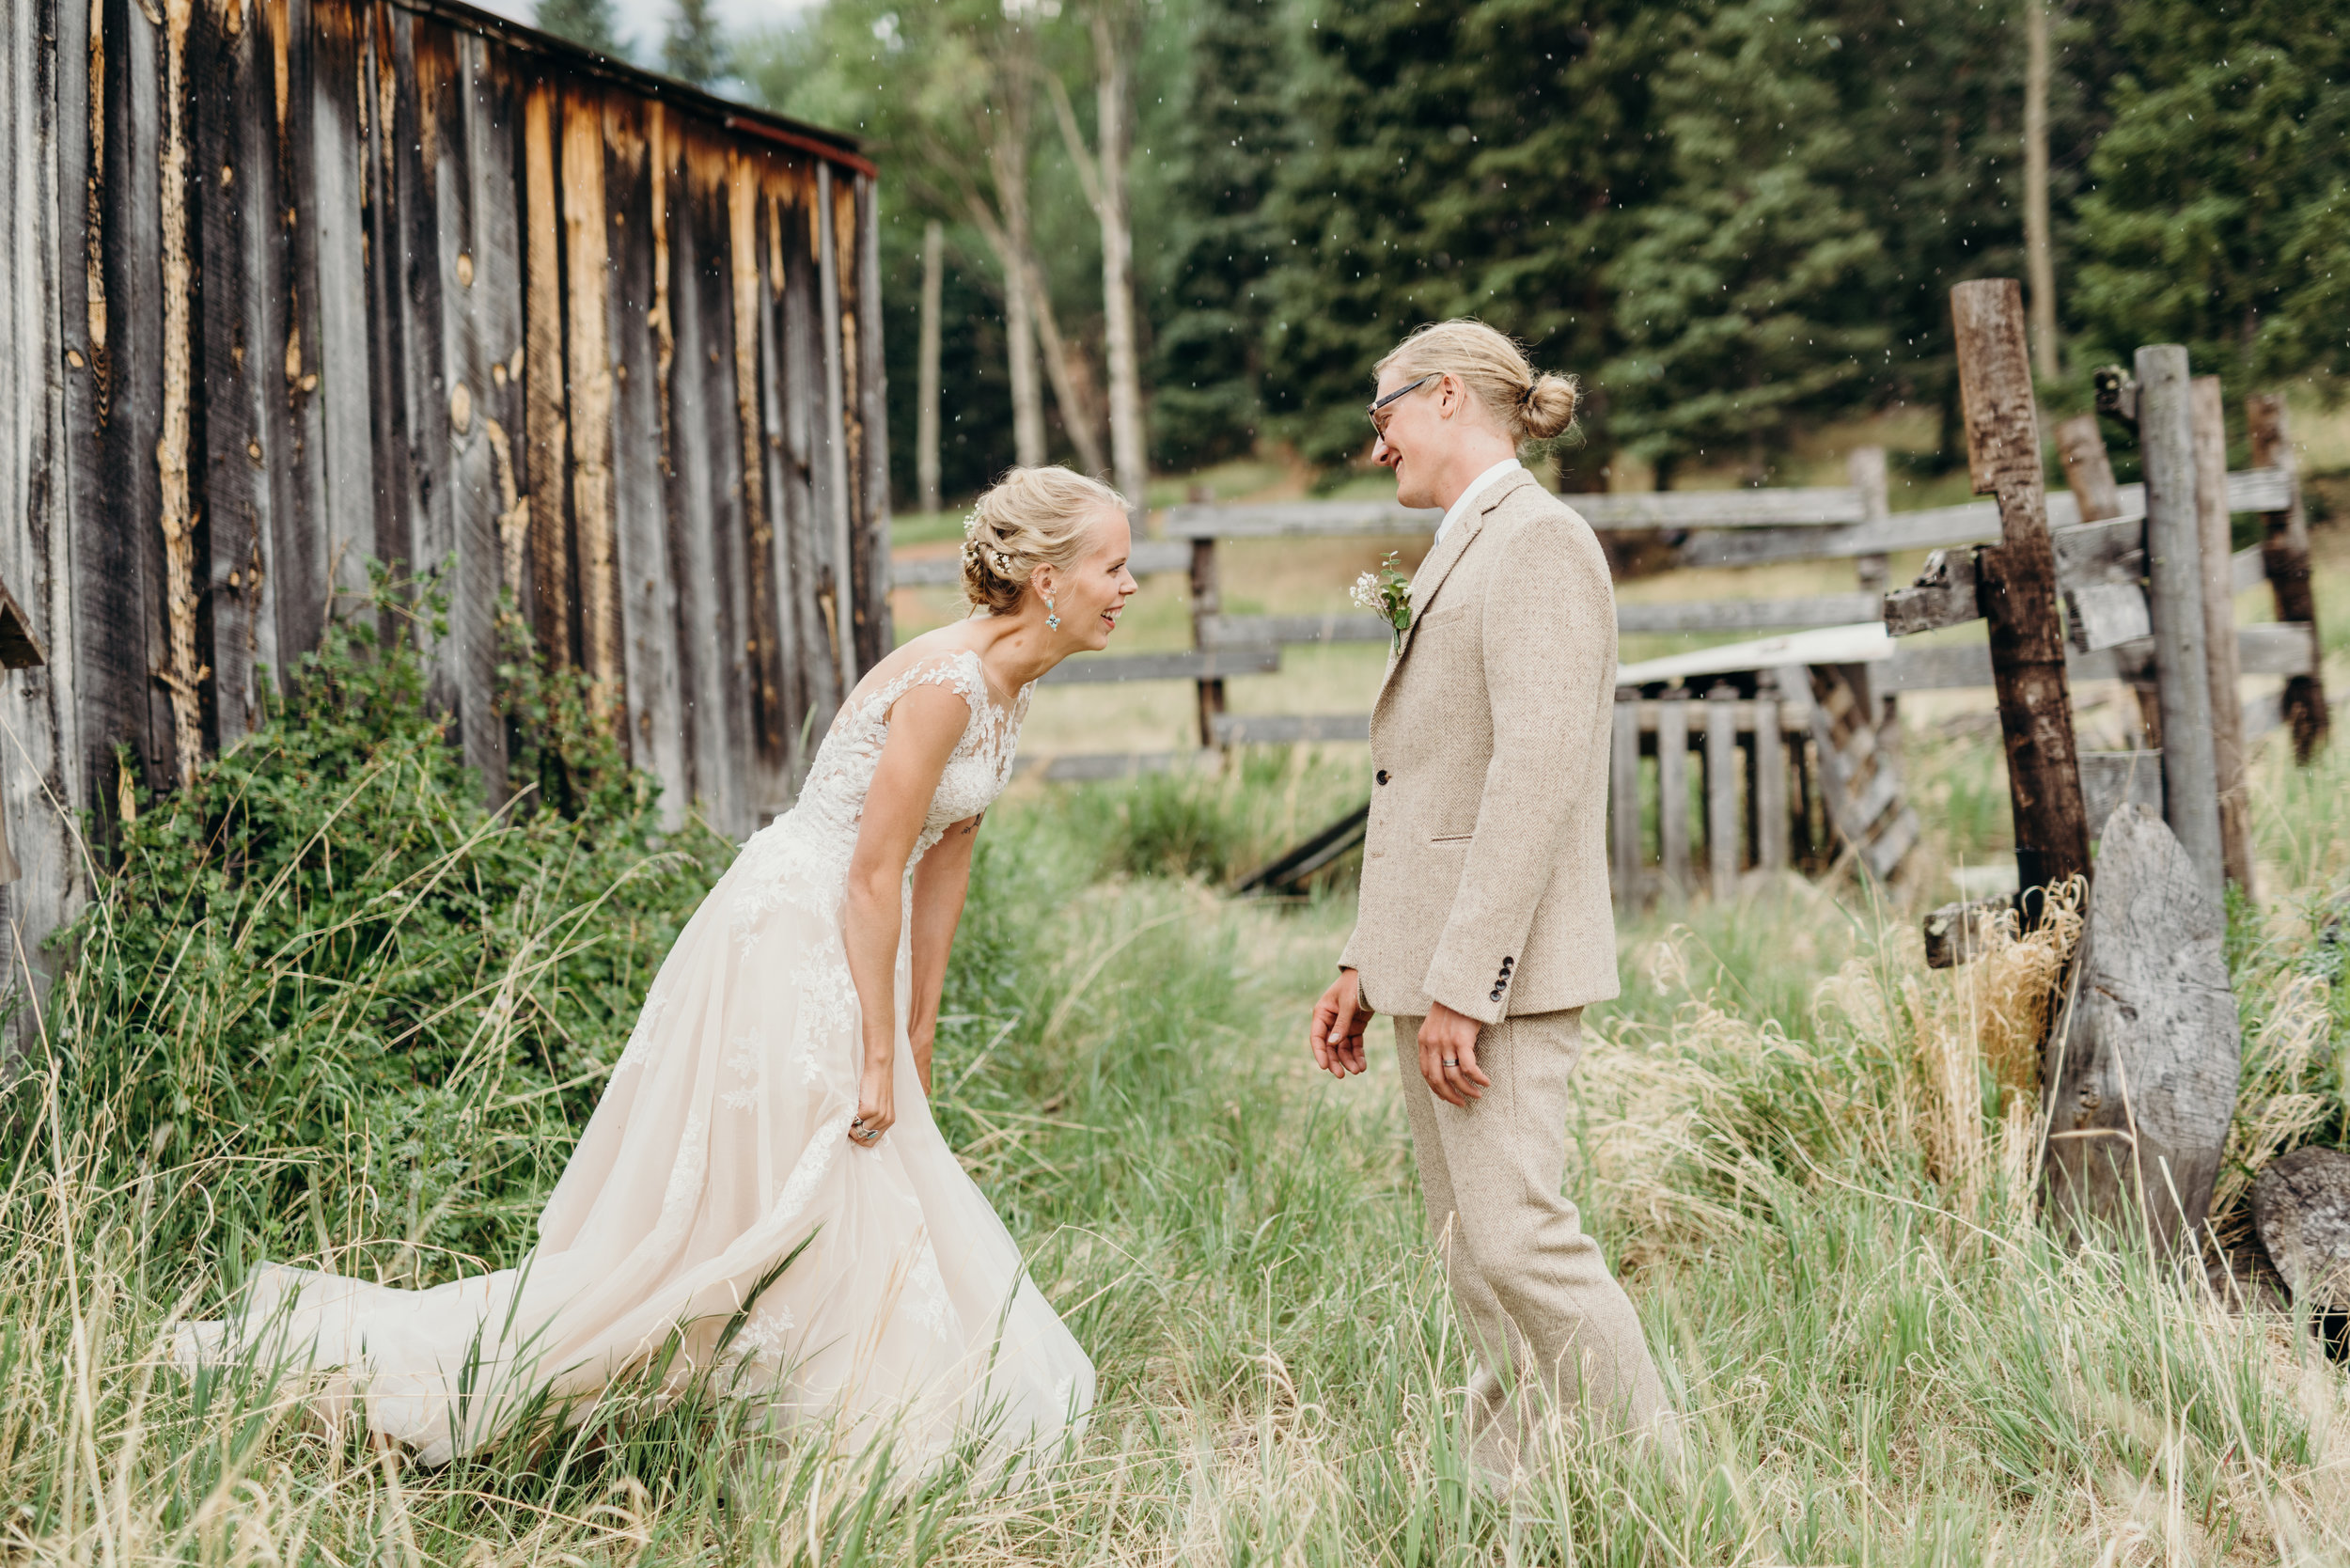 Ally & Jared's emotional first look / rustic Colorado mountain / diy / summer camp wedding